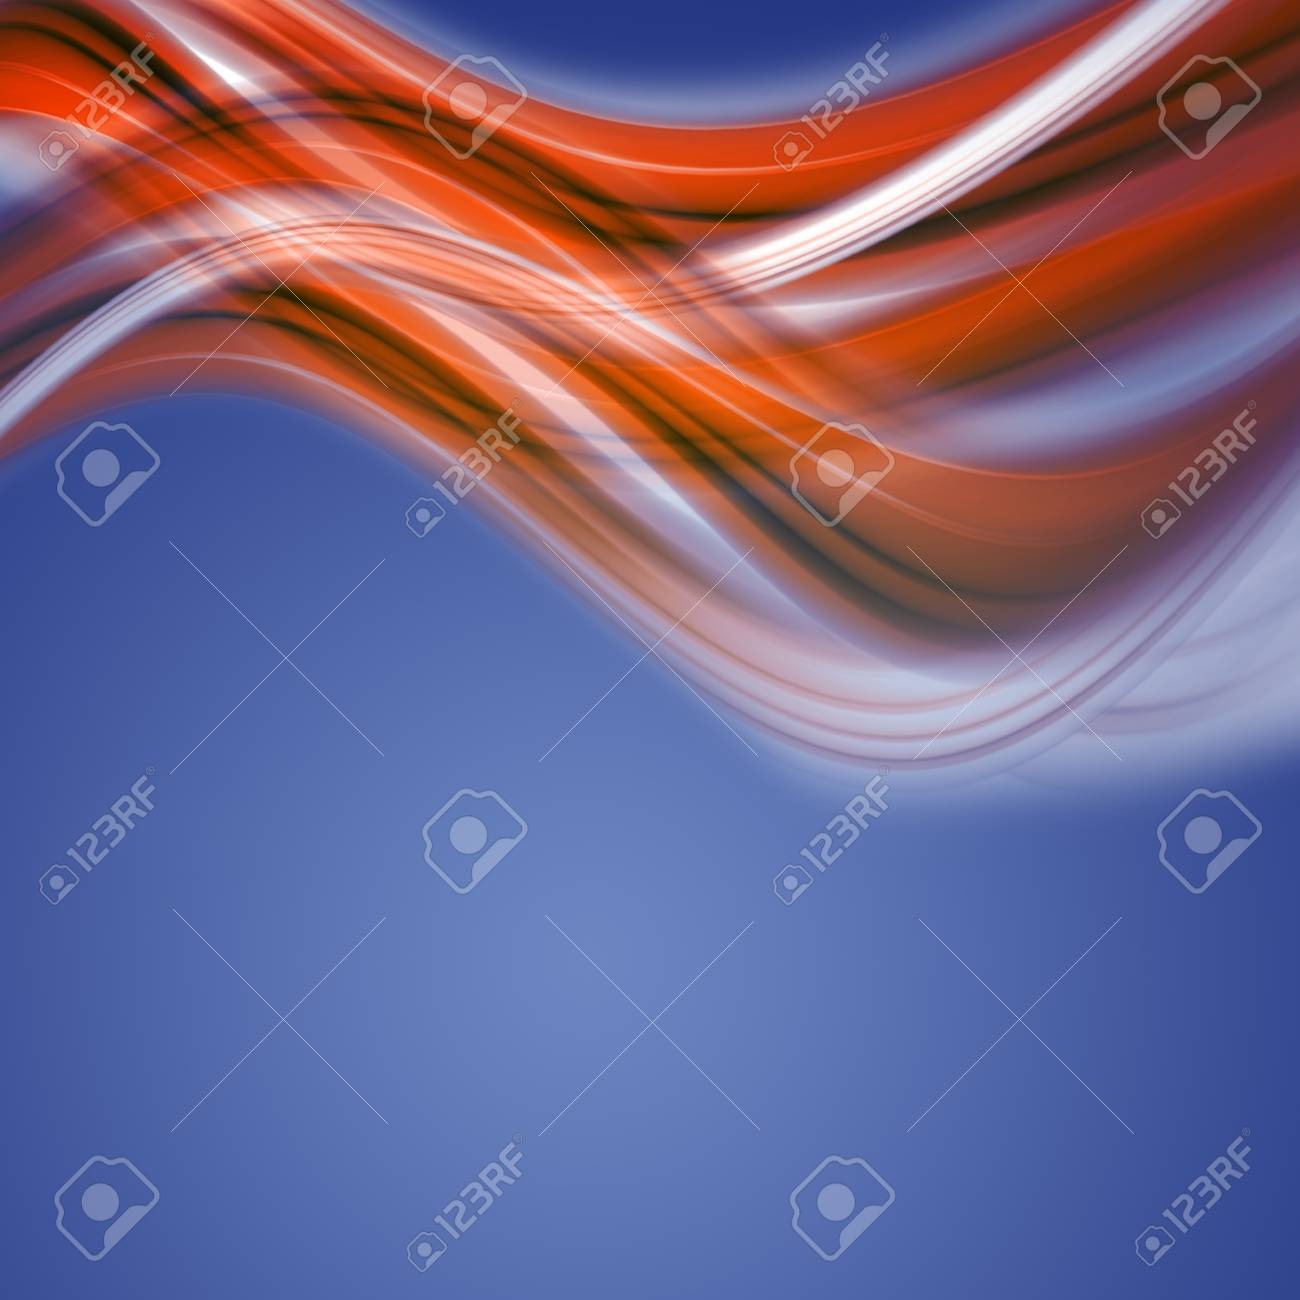 Abstract elegant background design with space for your text Stock Photo - 16623211